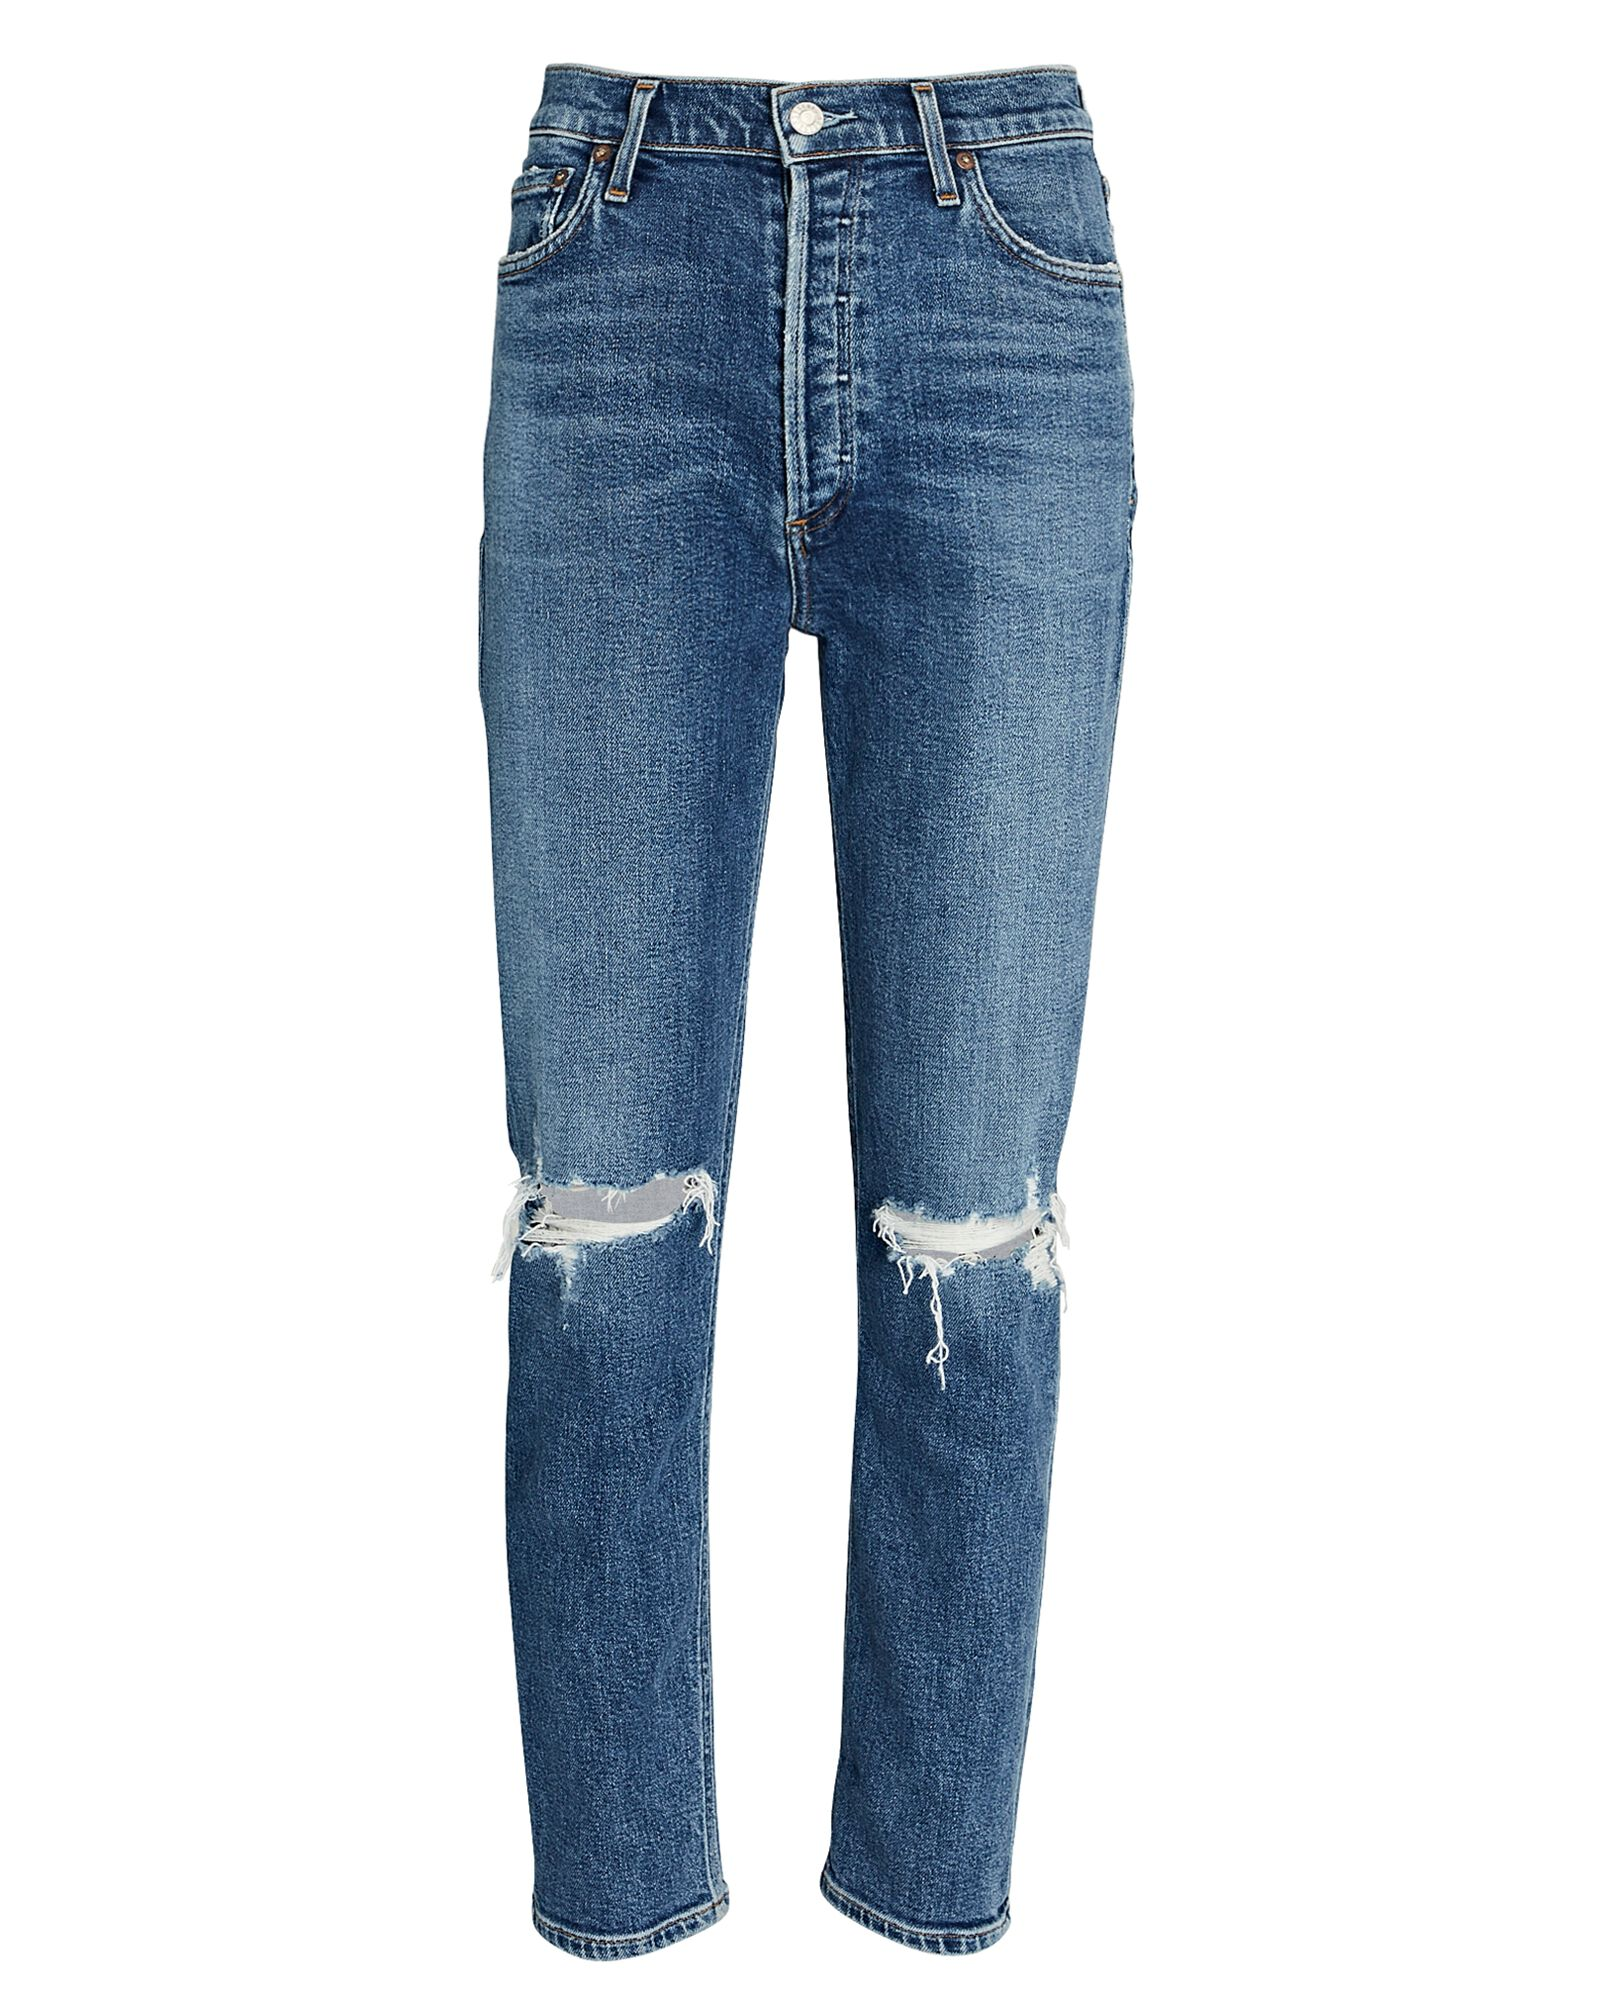 Nico High-Rise Skinny Jeans, BETRAY, hi-res